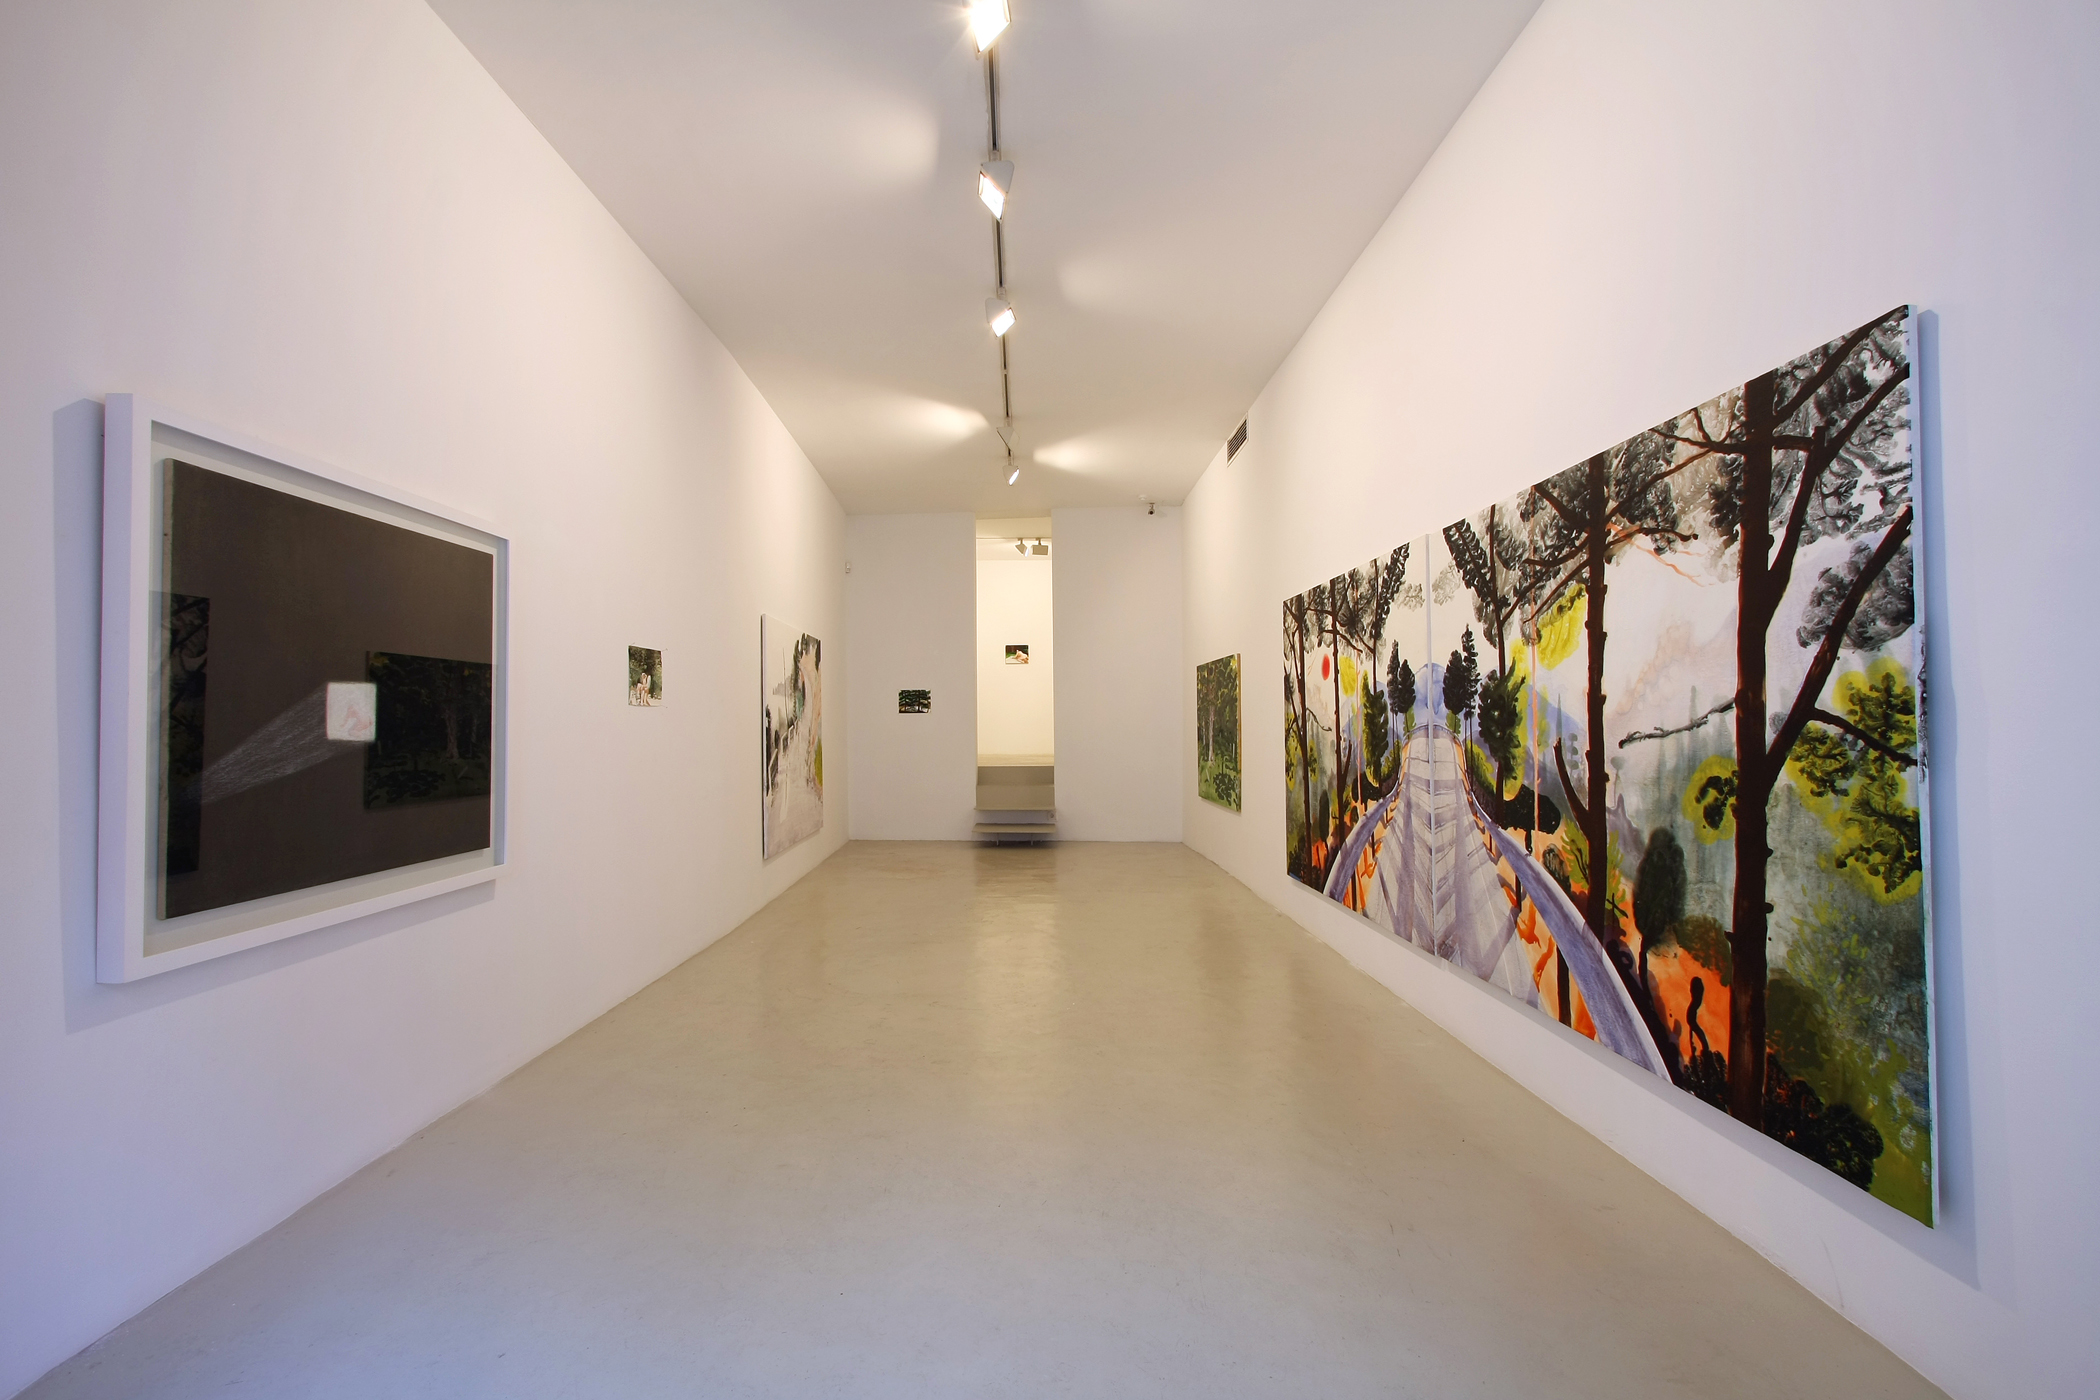 Exhibition view from Nicholas Woods, 2008